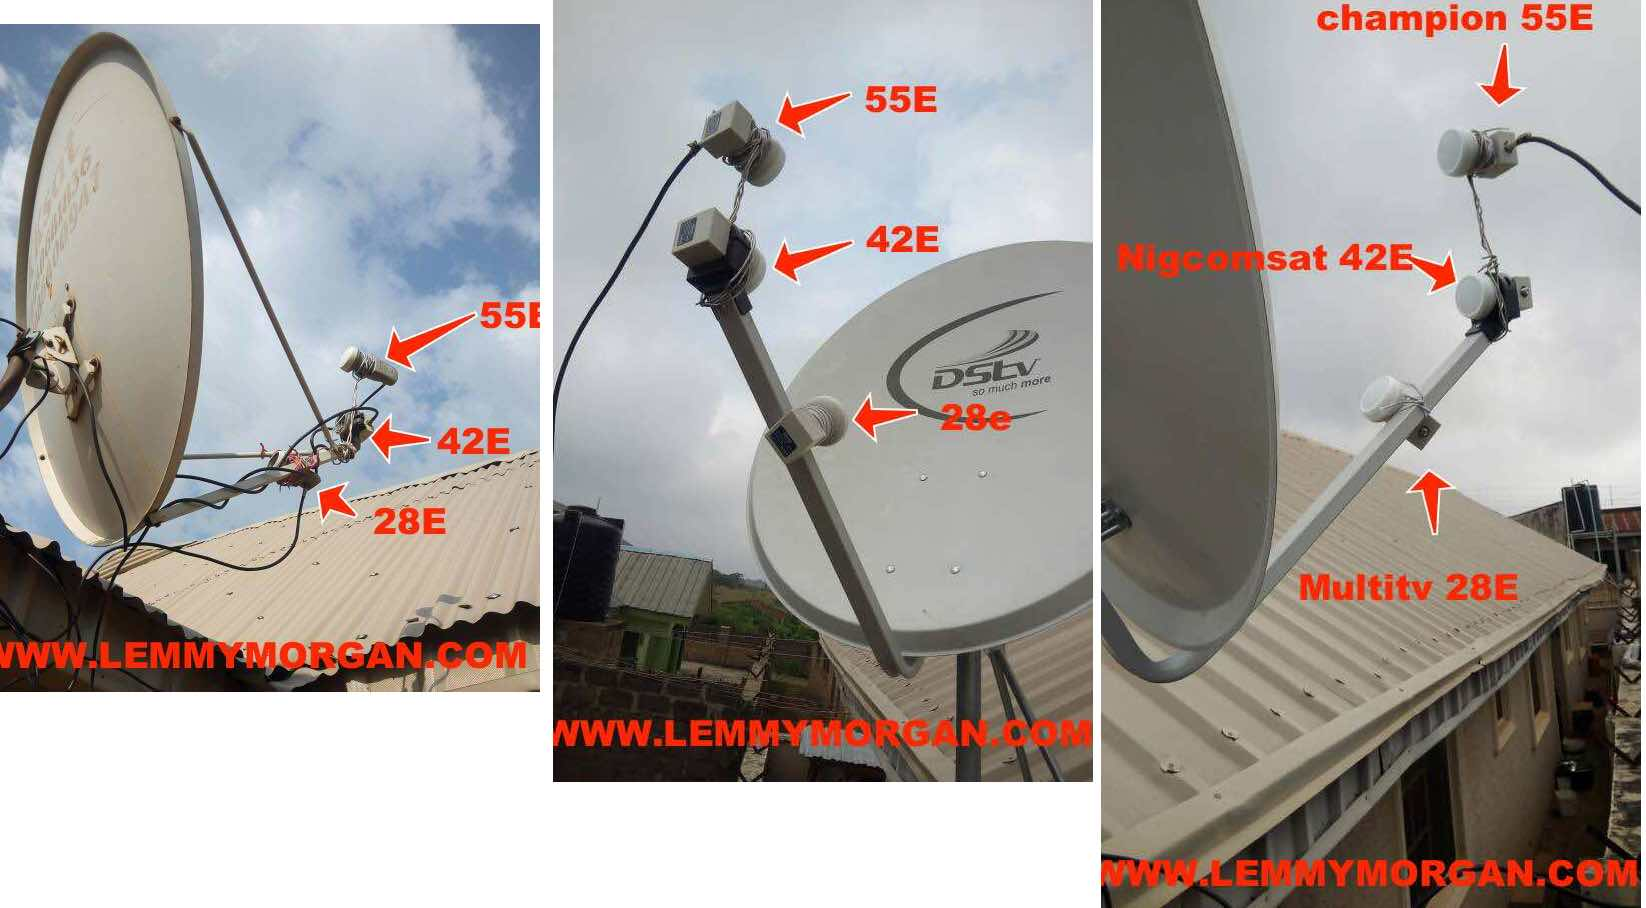 Wiring Diagrams Additionally 3 Dish Hopper Wiring Diagram As Well